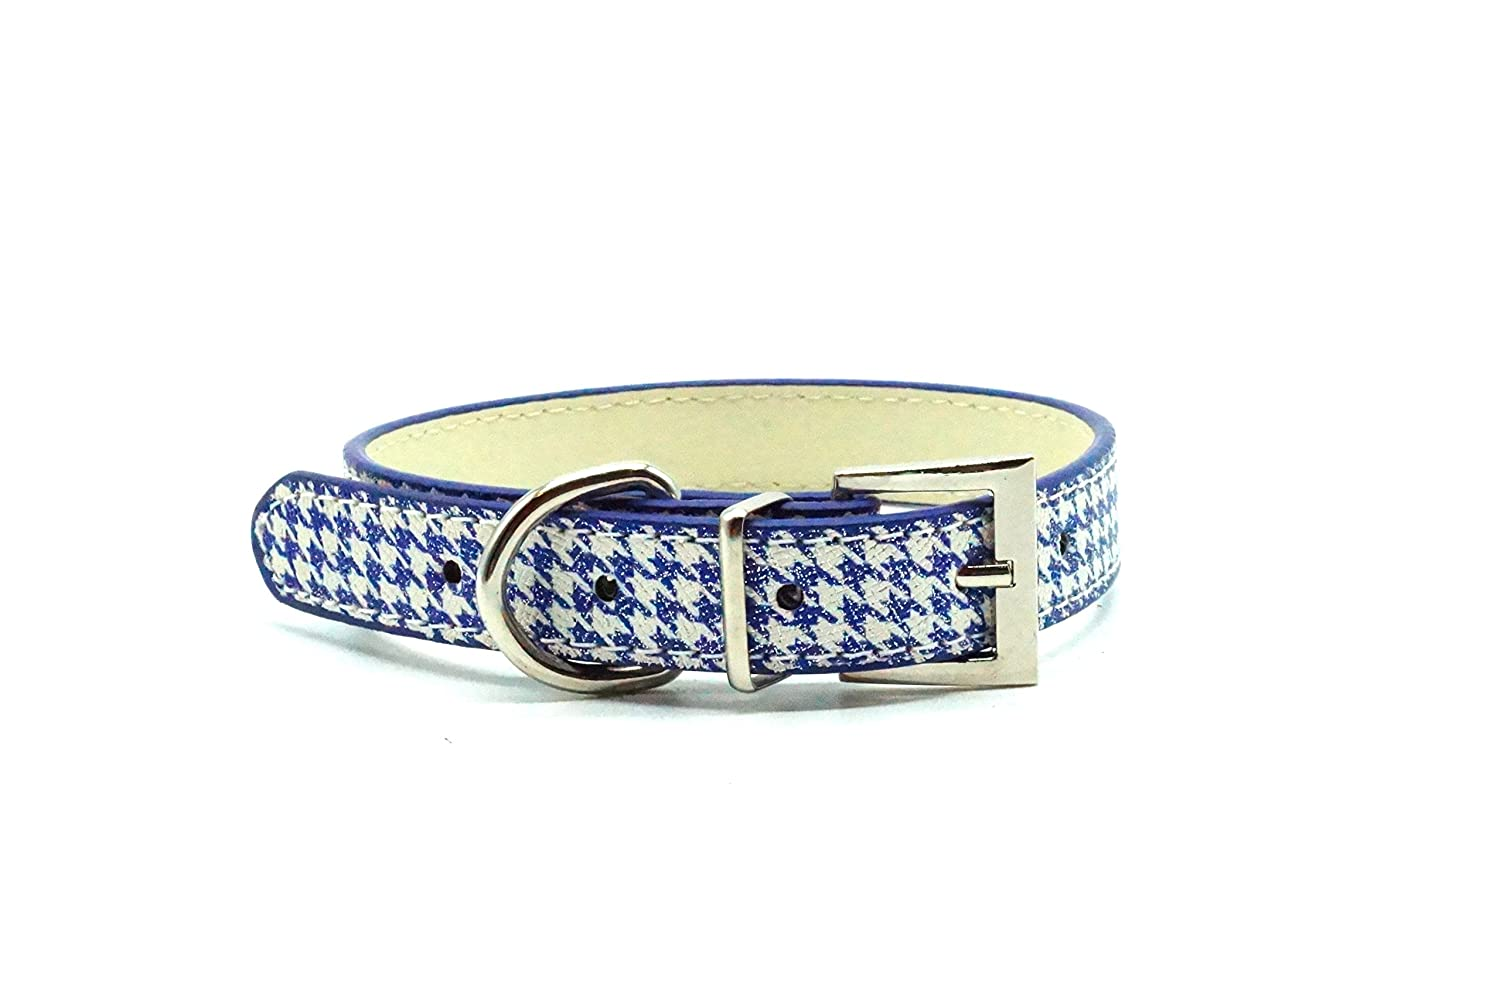 blueE M blueE M Classic Houndstooth Dog Collar (M, blueE)